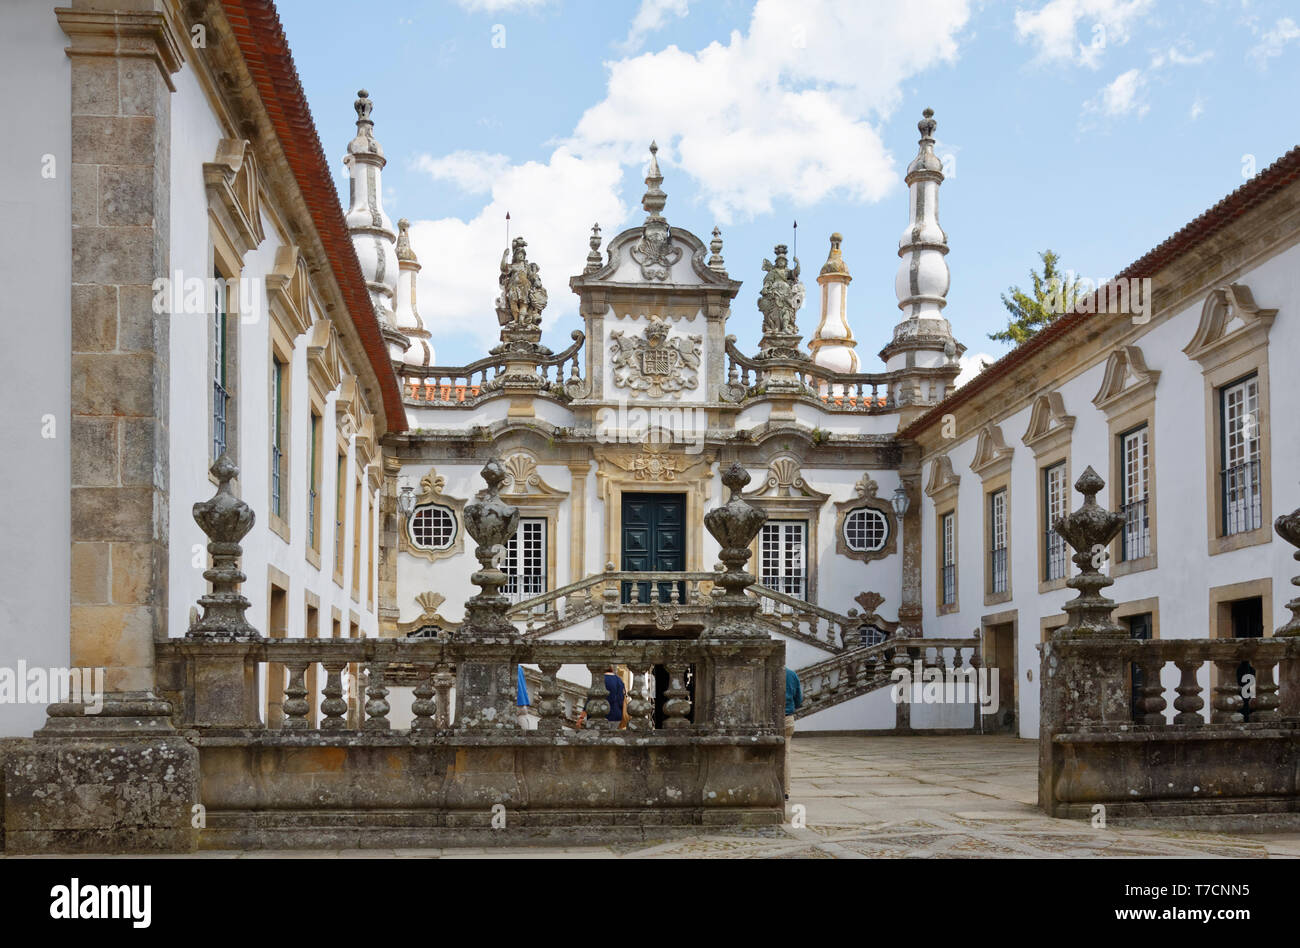 Mateus Estate and Winery; 18 century; old Baroque building; elegant mansion, double staircases, Europe; Vila Real; Portugal; spring, horizontal - Stock Image